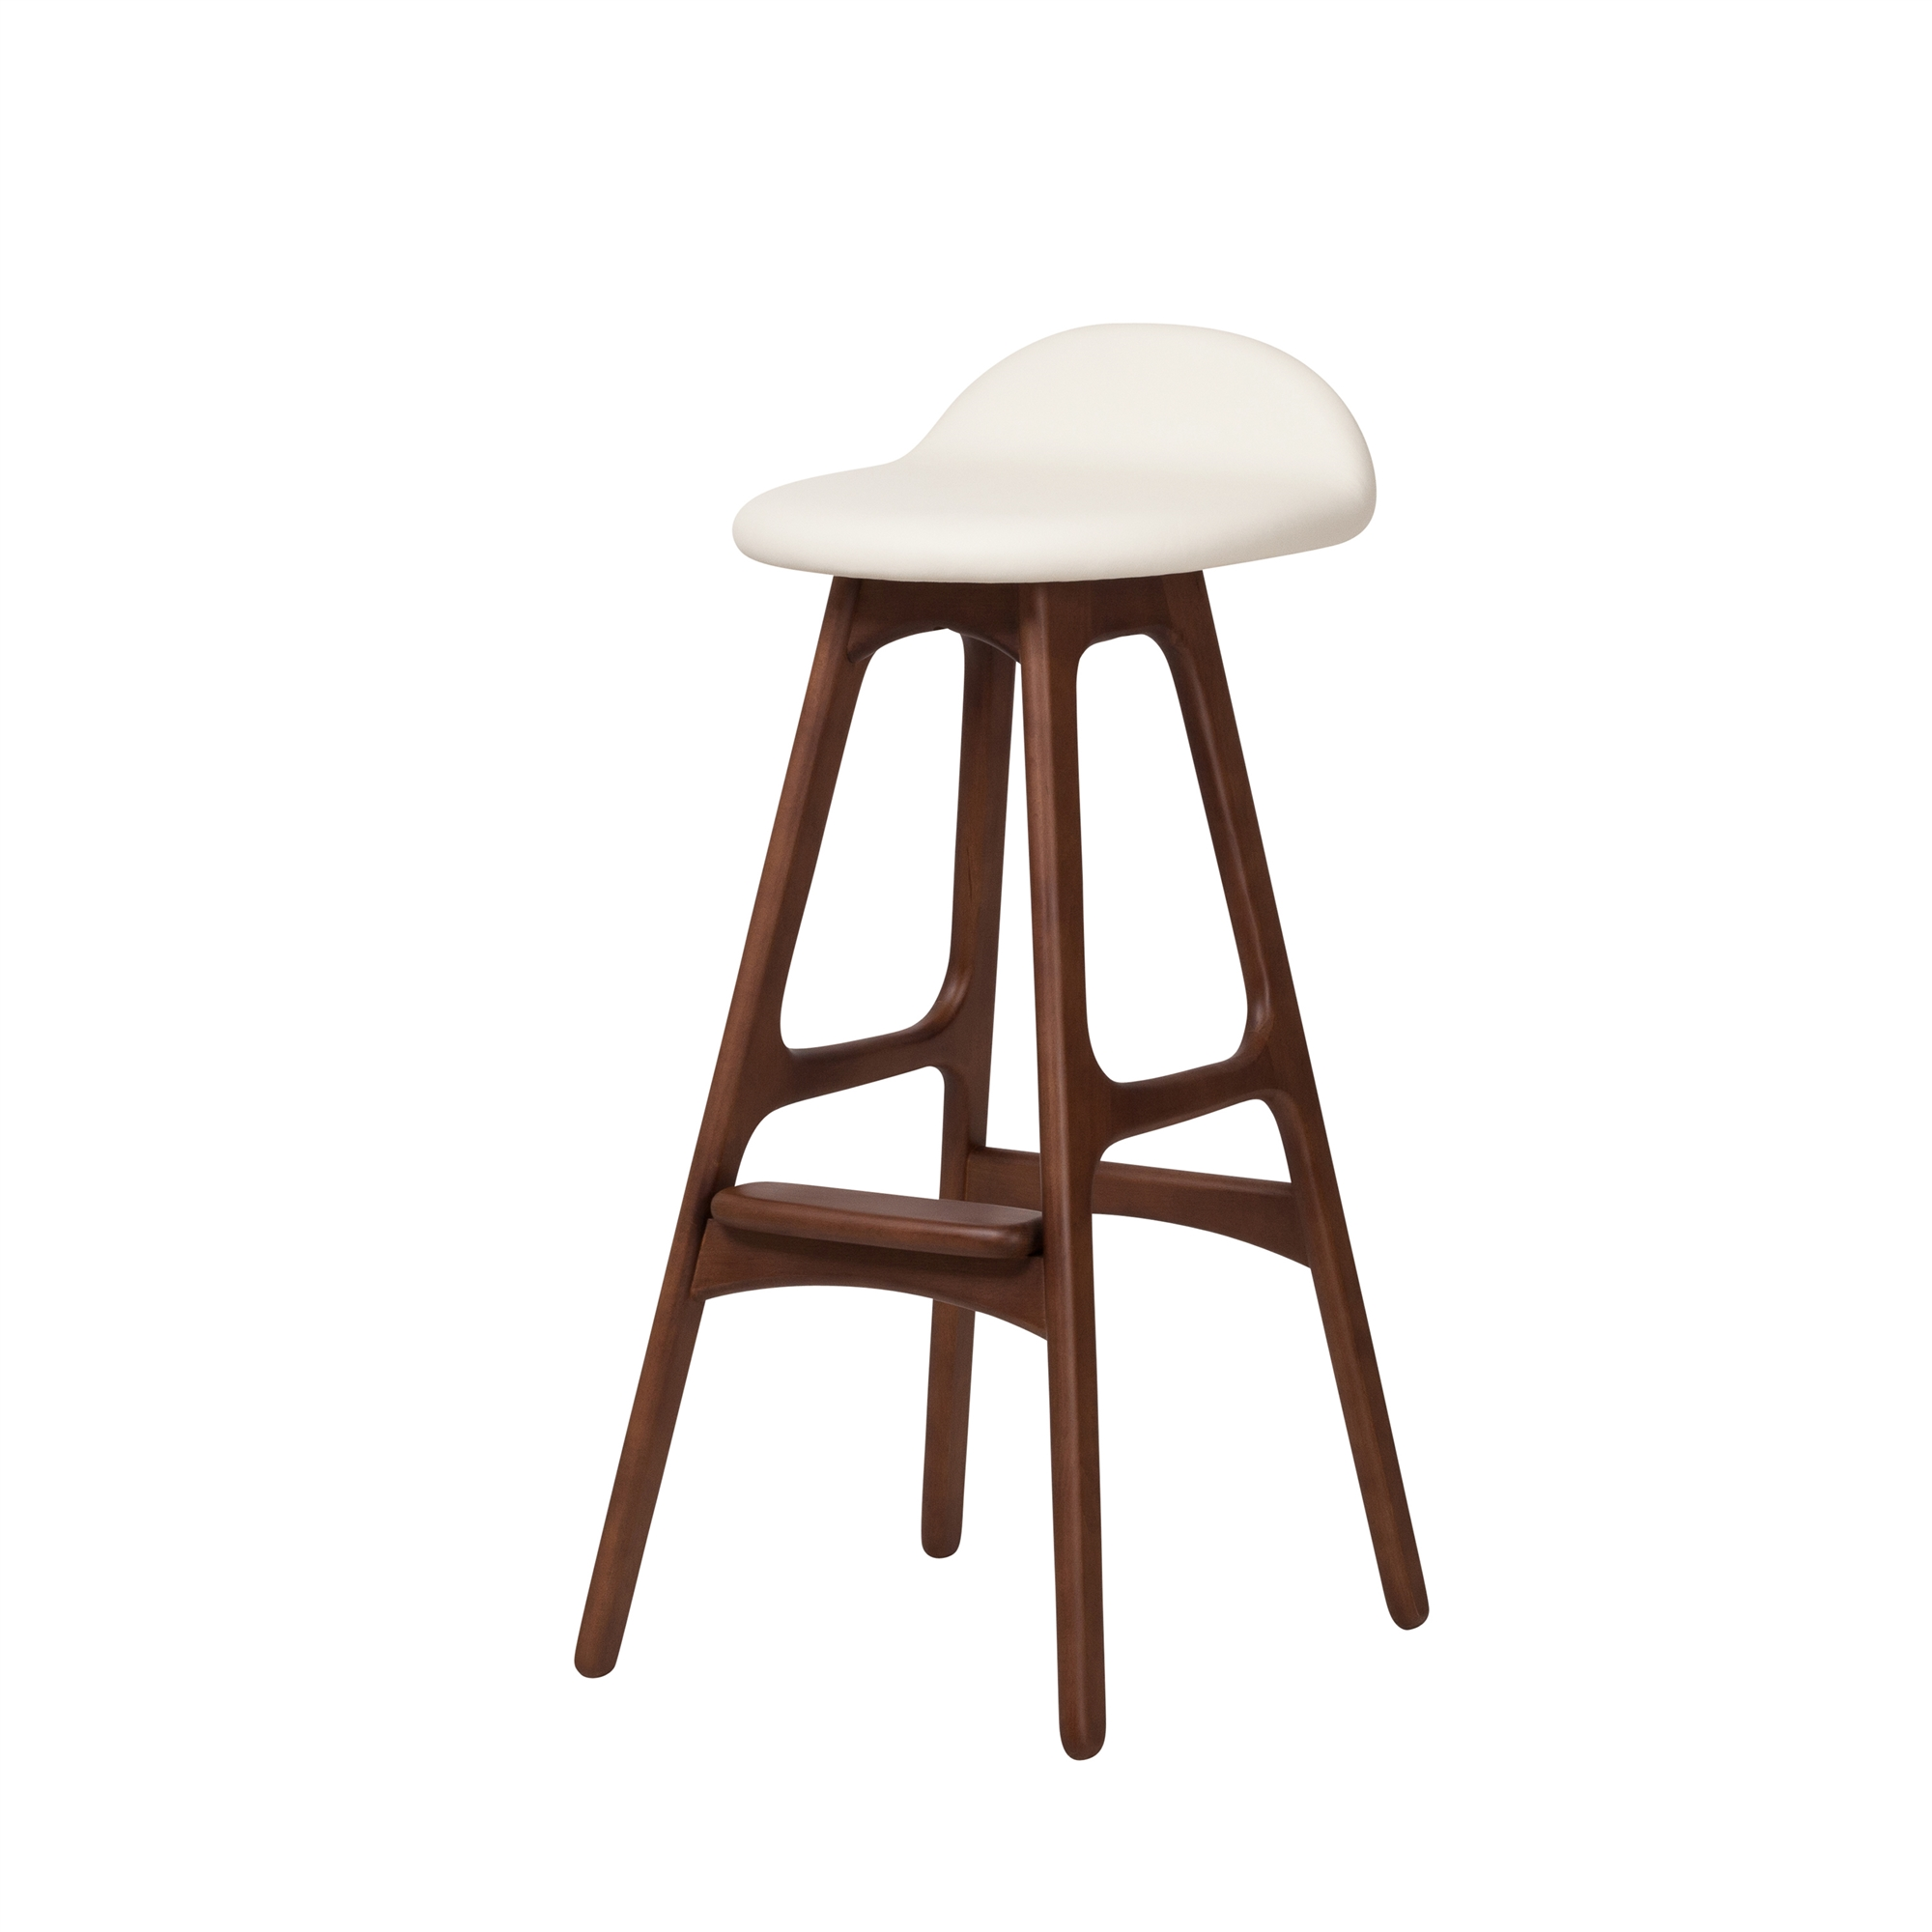 Awesome Bar Stools Table and Chairs